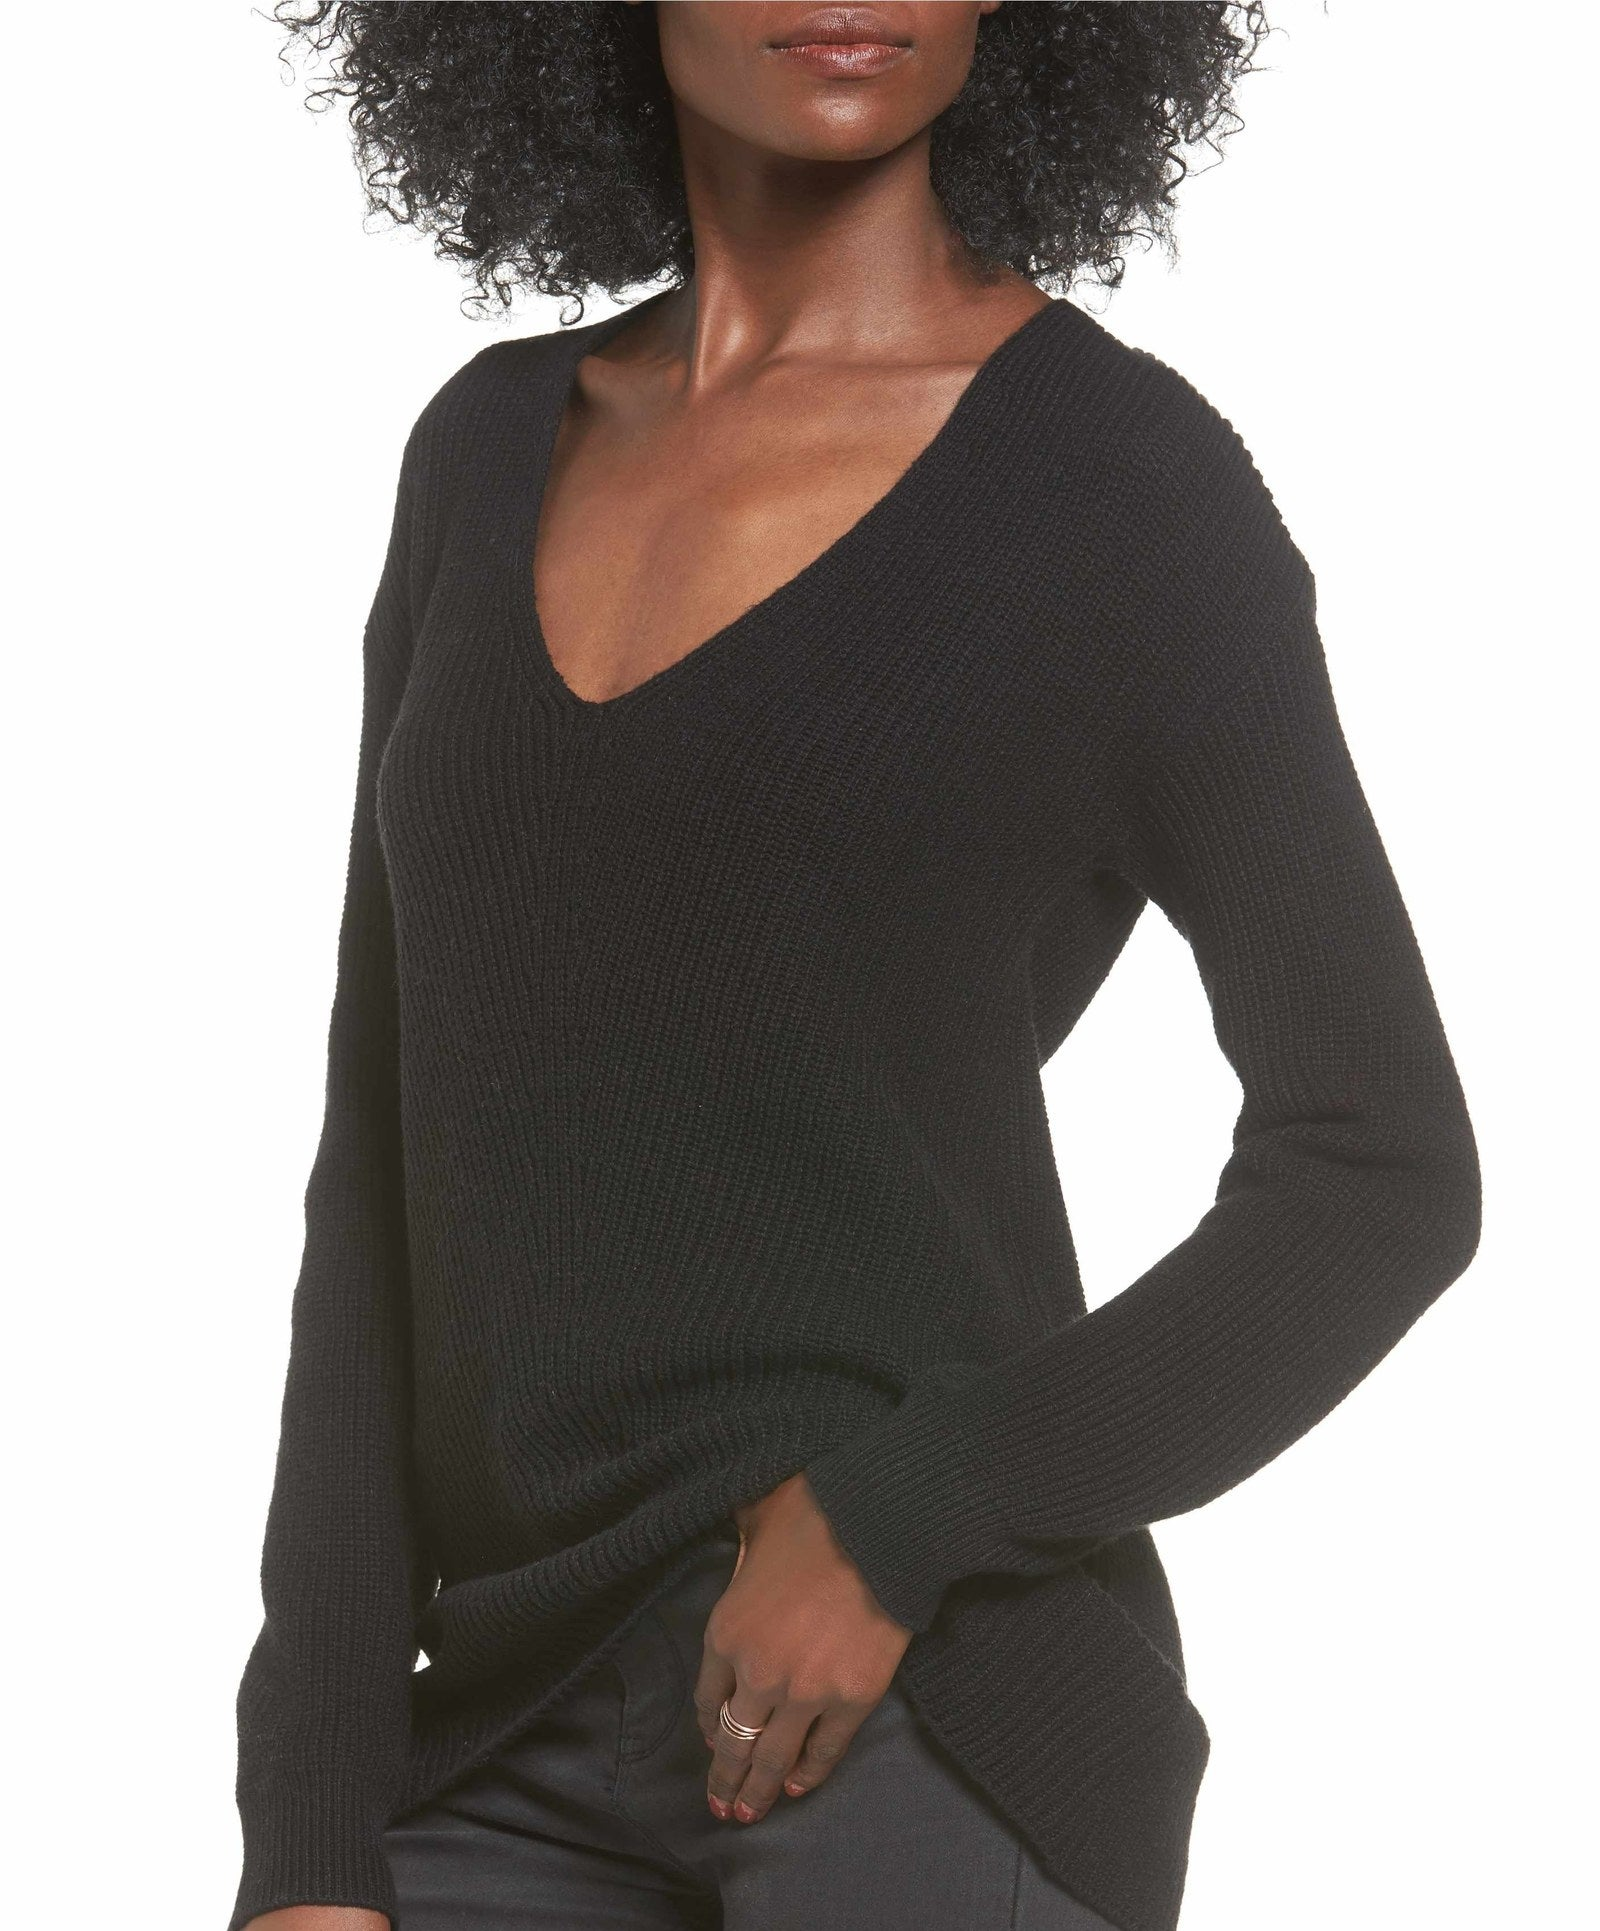 Price: $14.97 (originally $45; available in sizes XXS-XL and in six colors)